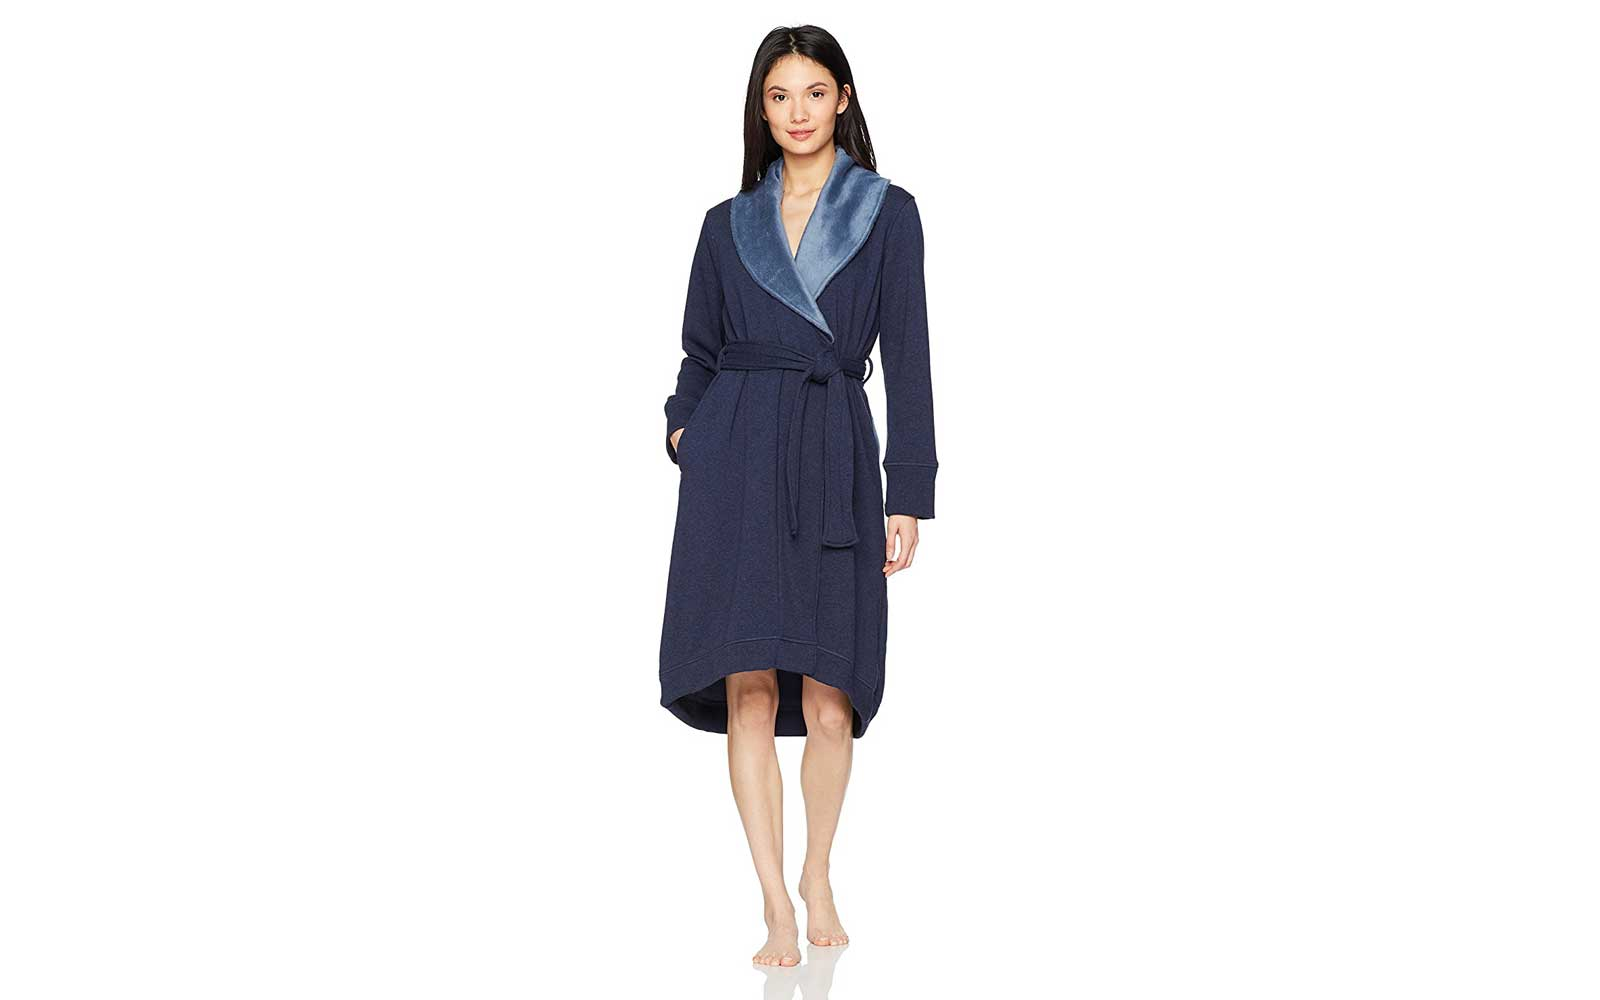 Ugg Women's Bathrobe